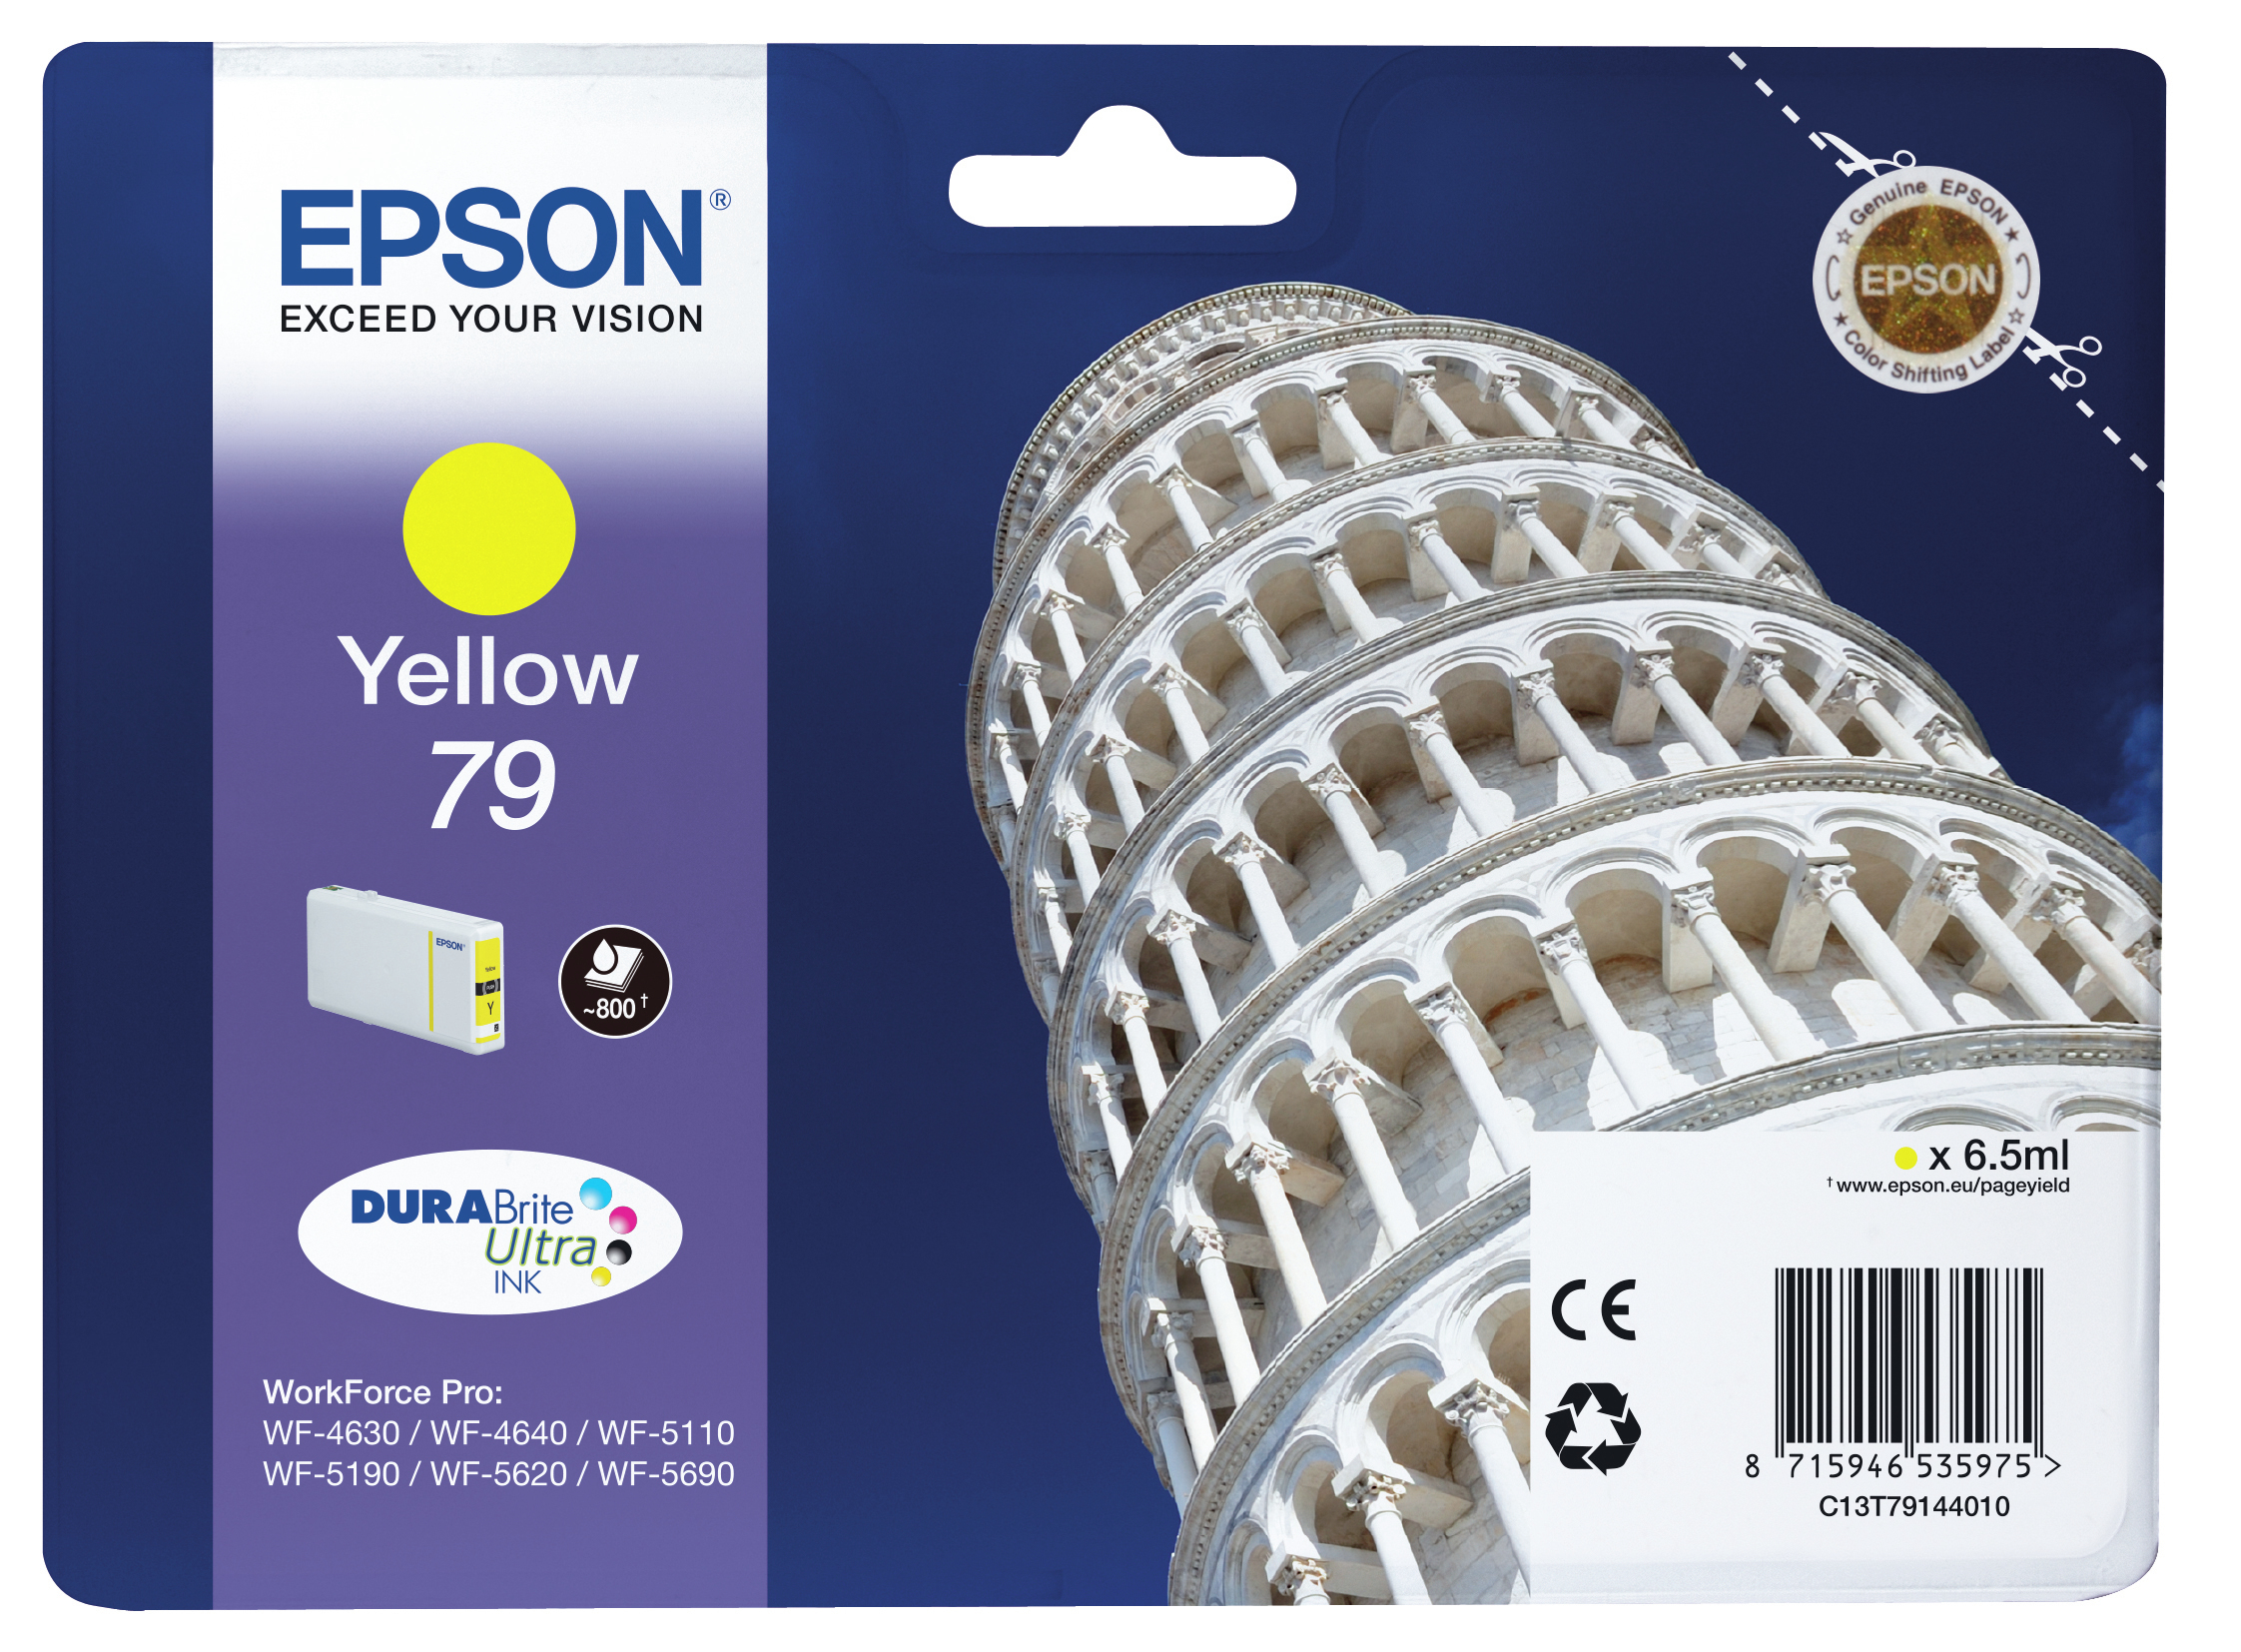 Epst79144010   Epson 79 Yellow Ink            Pisa Yellow Ink                                              - UF01